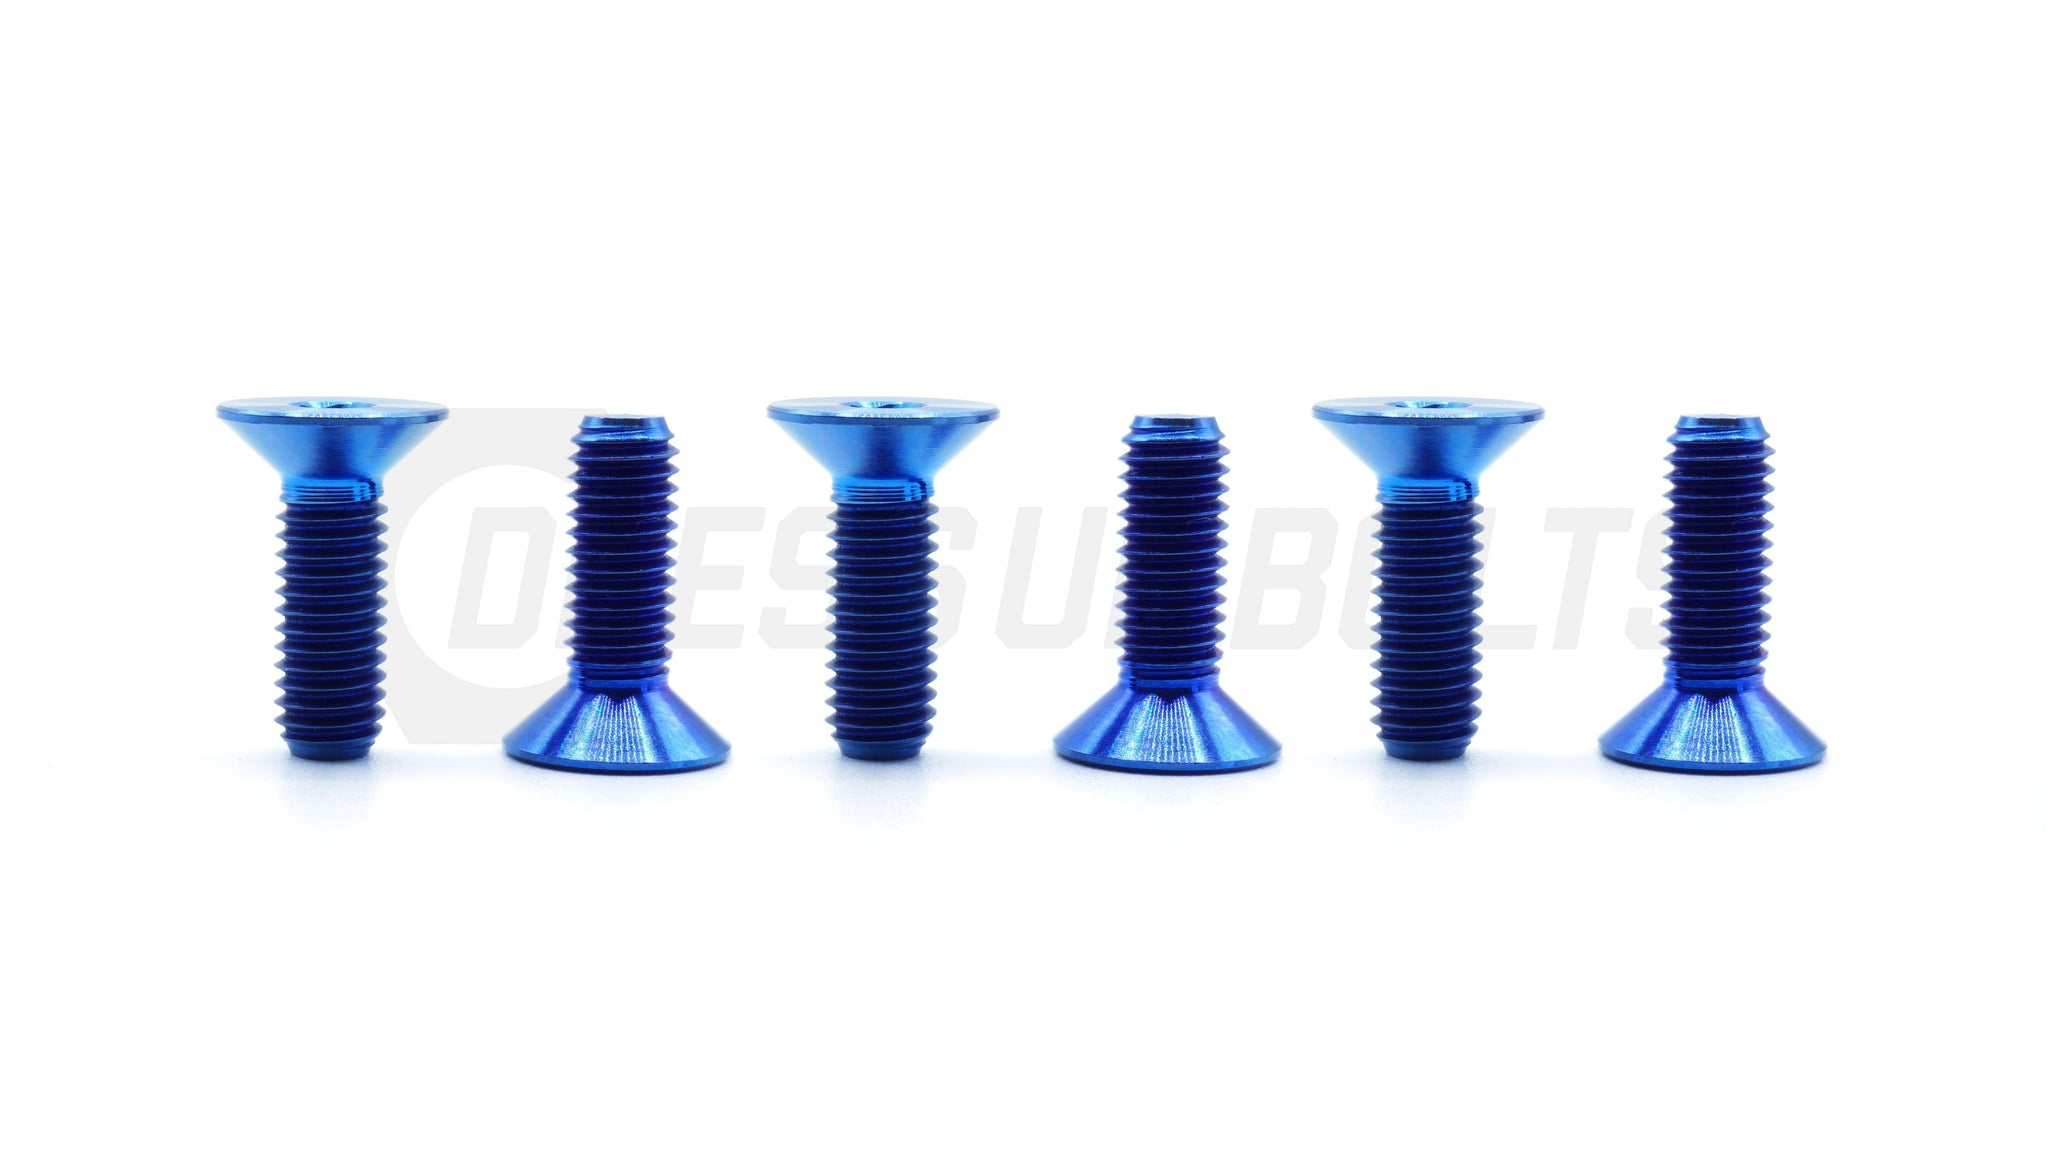 Dress Up Bolts Titanium Hardware Steering Wheel Kit - (15mm) - DressUpBolts.com